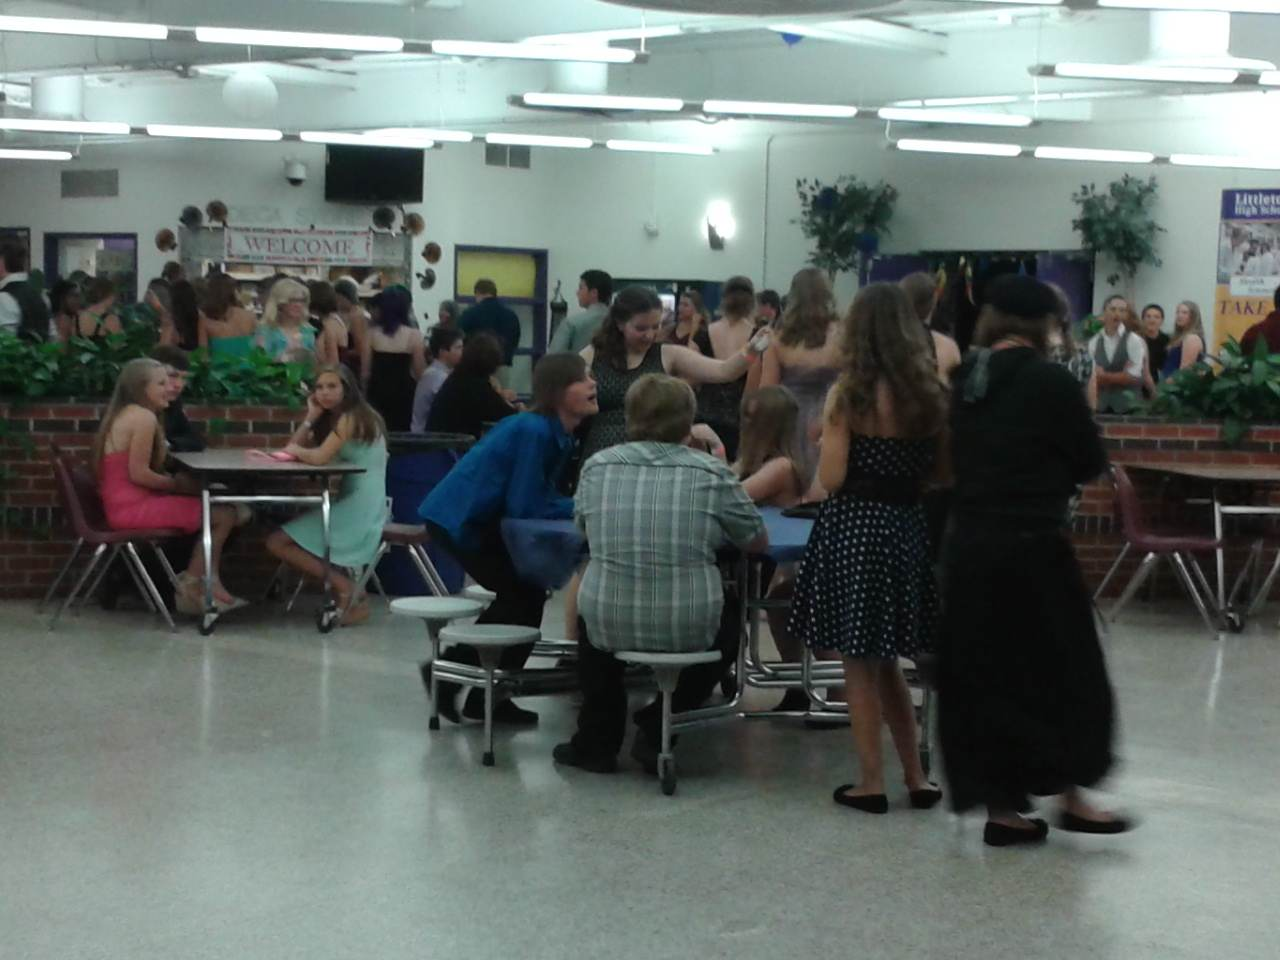 Students take a break during the Homecoming dance and socialize.